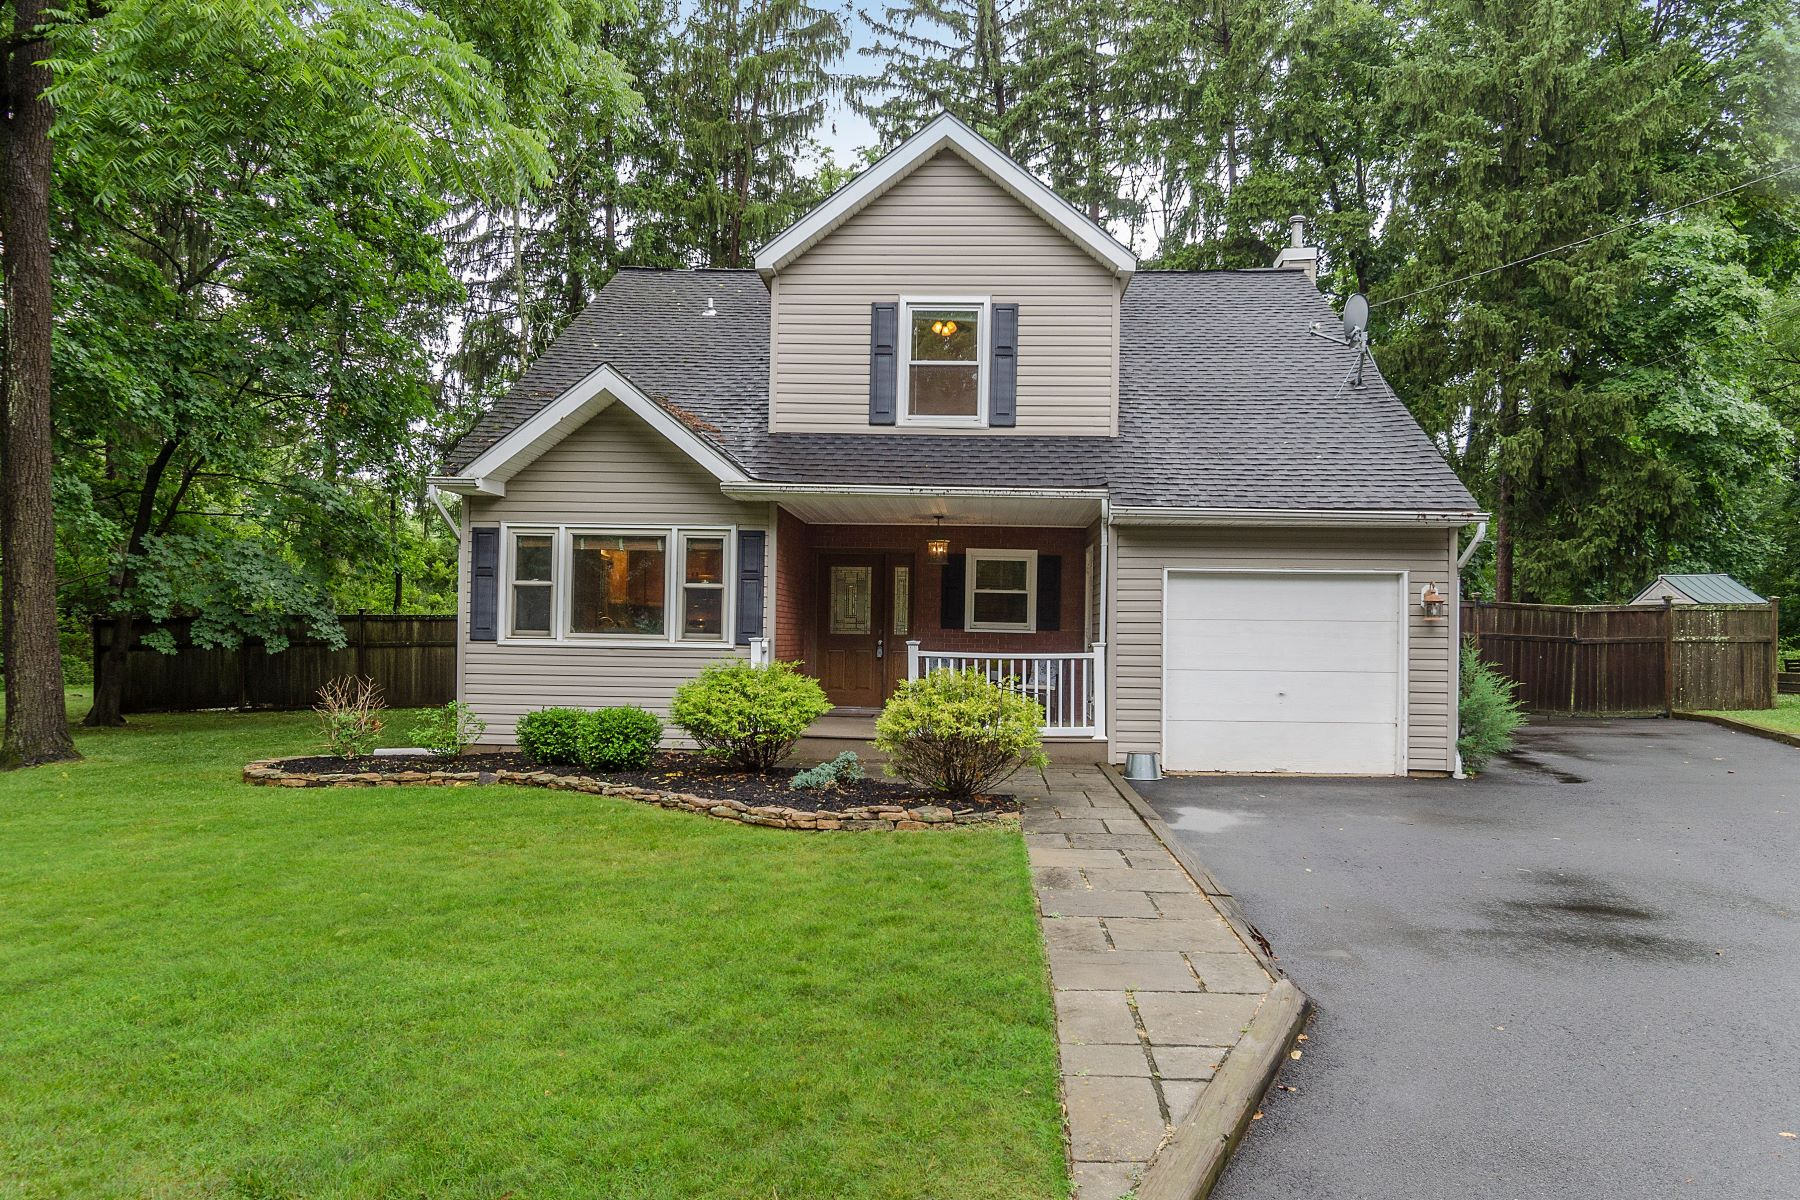 Single Family Homes for Sale at Staying Home Is a Joy in This Pennington 3-Bedroom 410 Reading Avenue, Pennington, New Jersey 08534 United States